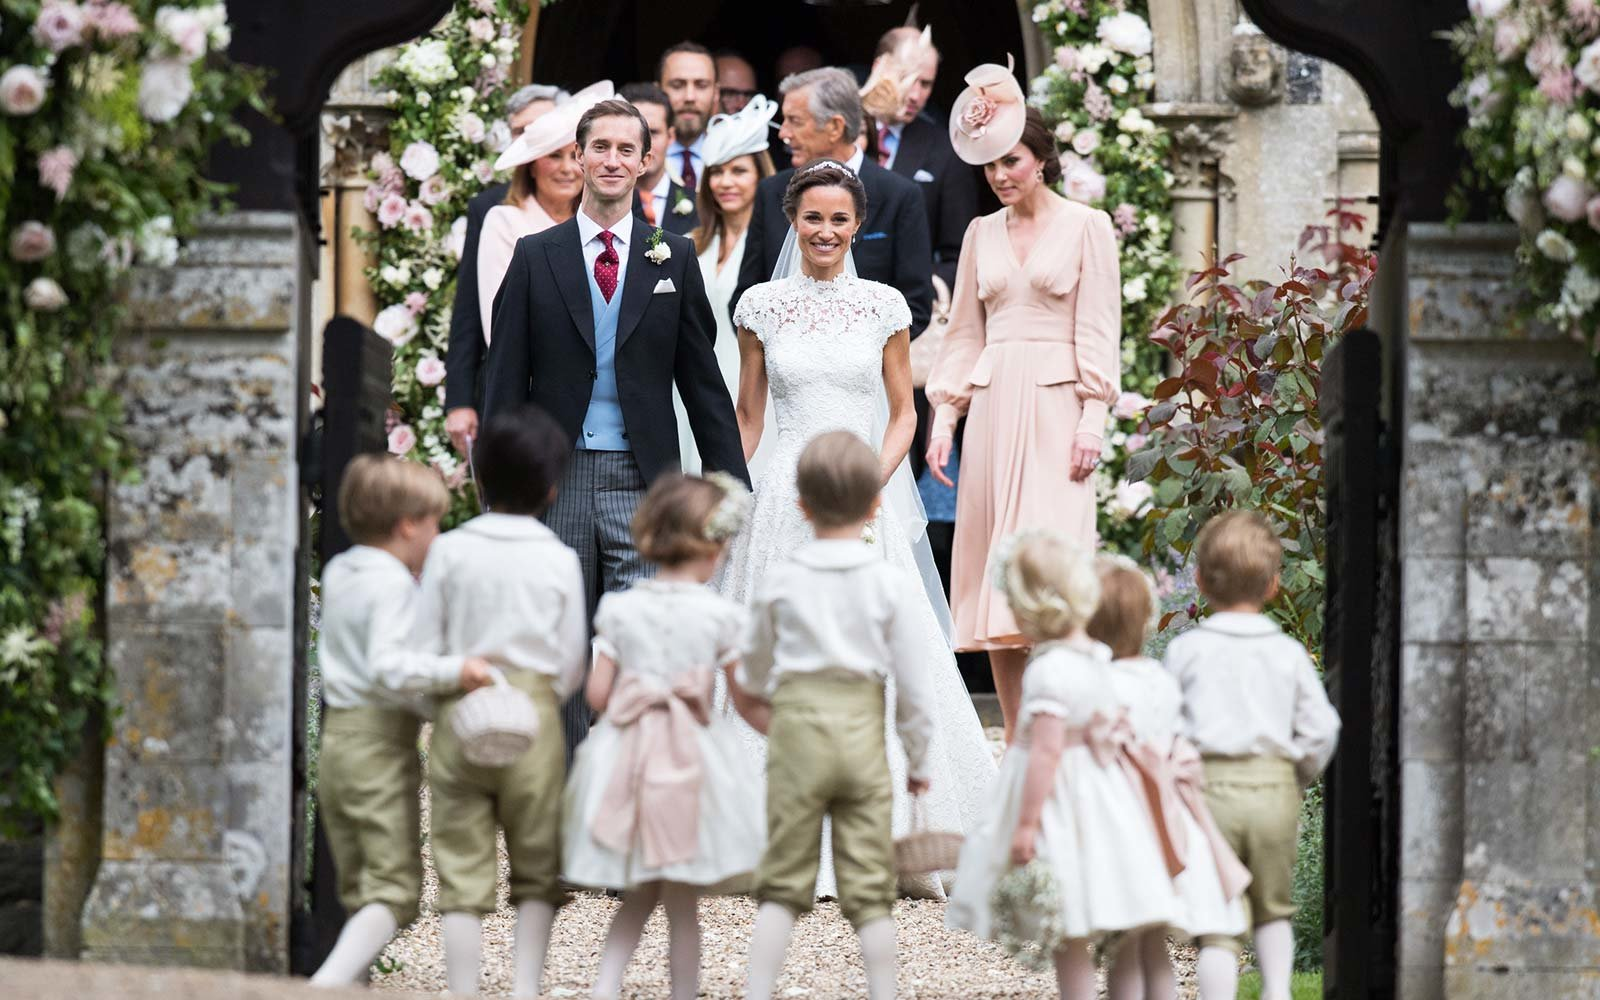 Pippa Middleton and James Matthews marriage royal wedding church England